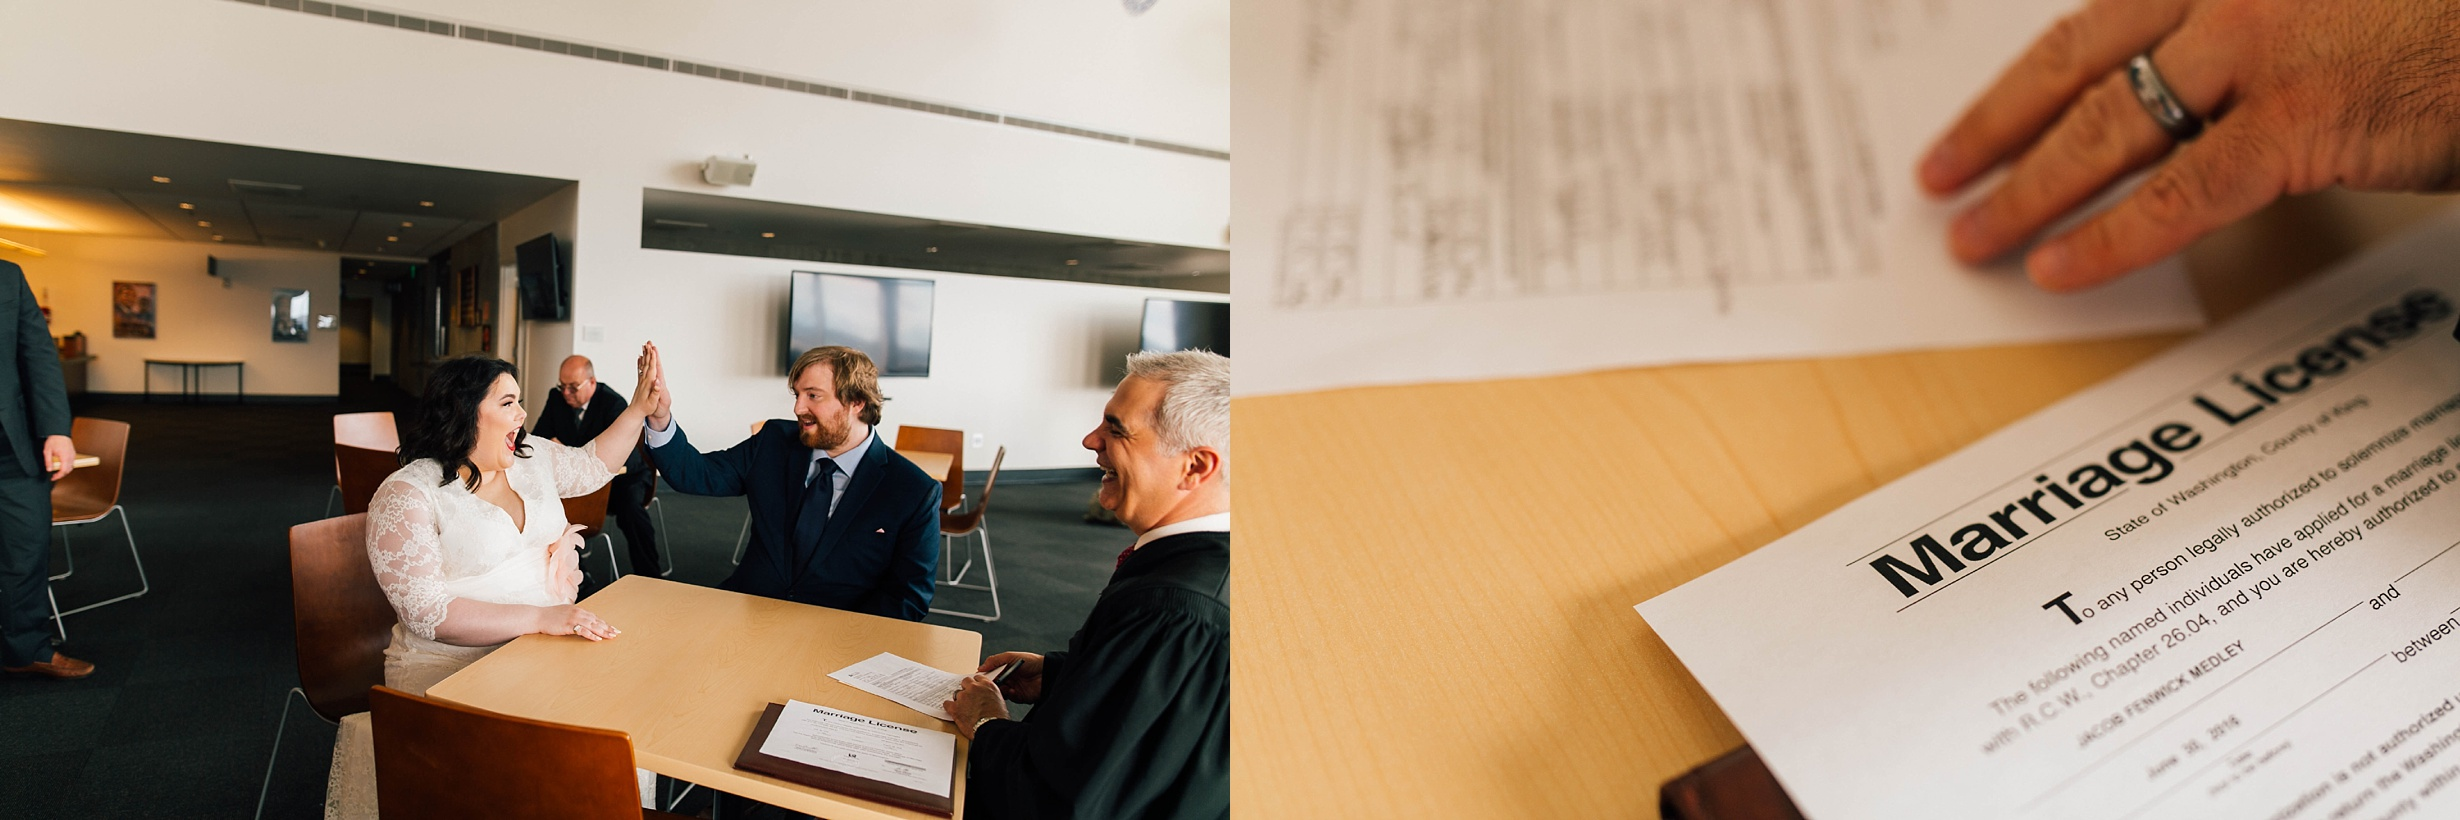 ashley_vos_seattle_Courthouse_ wedding_photographer_0166.jpg